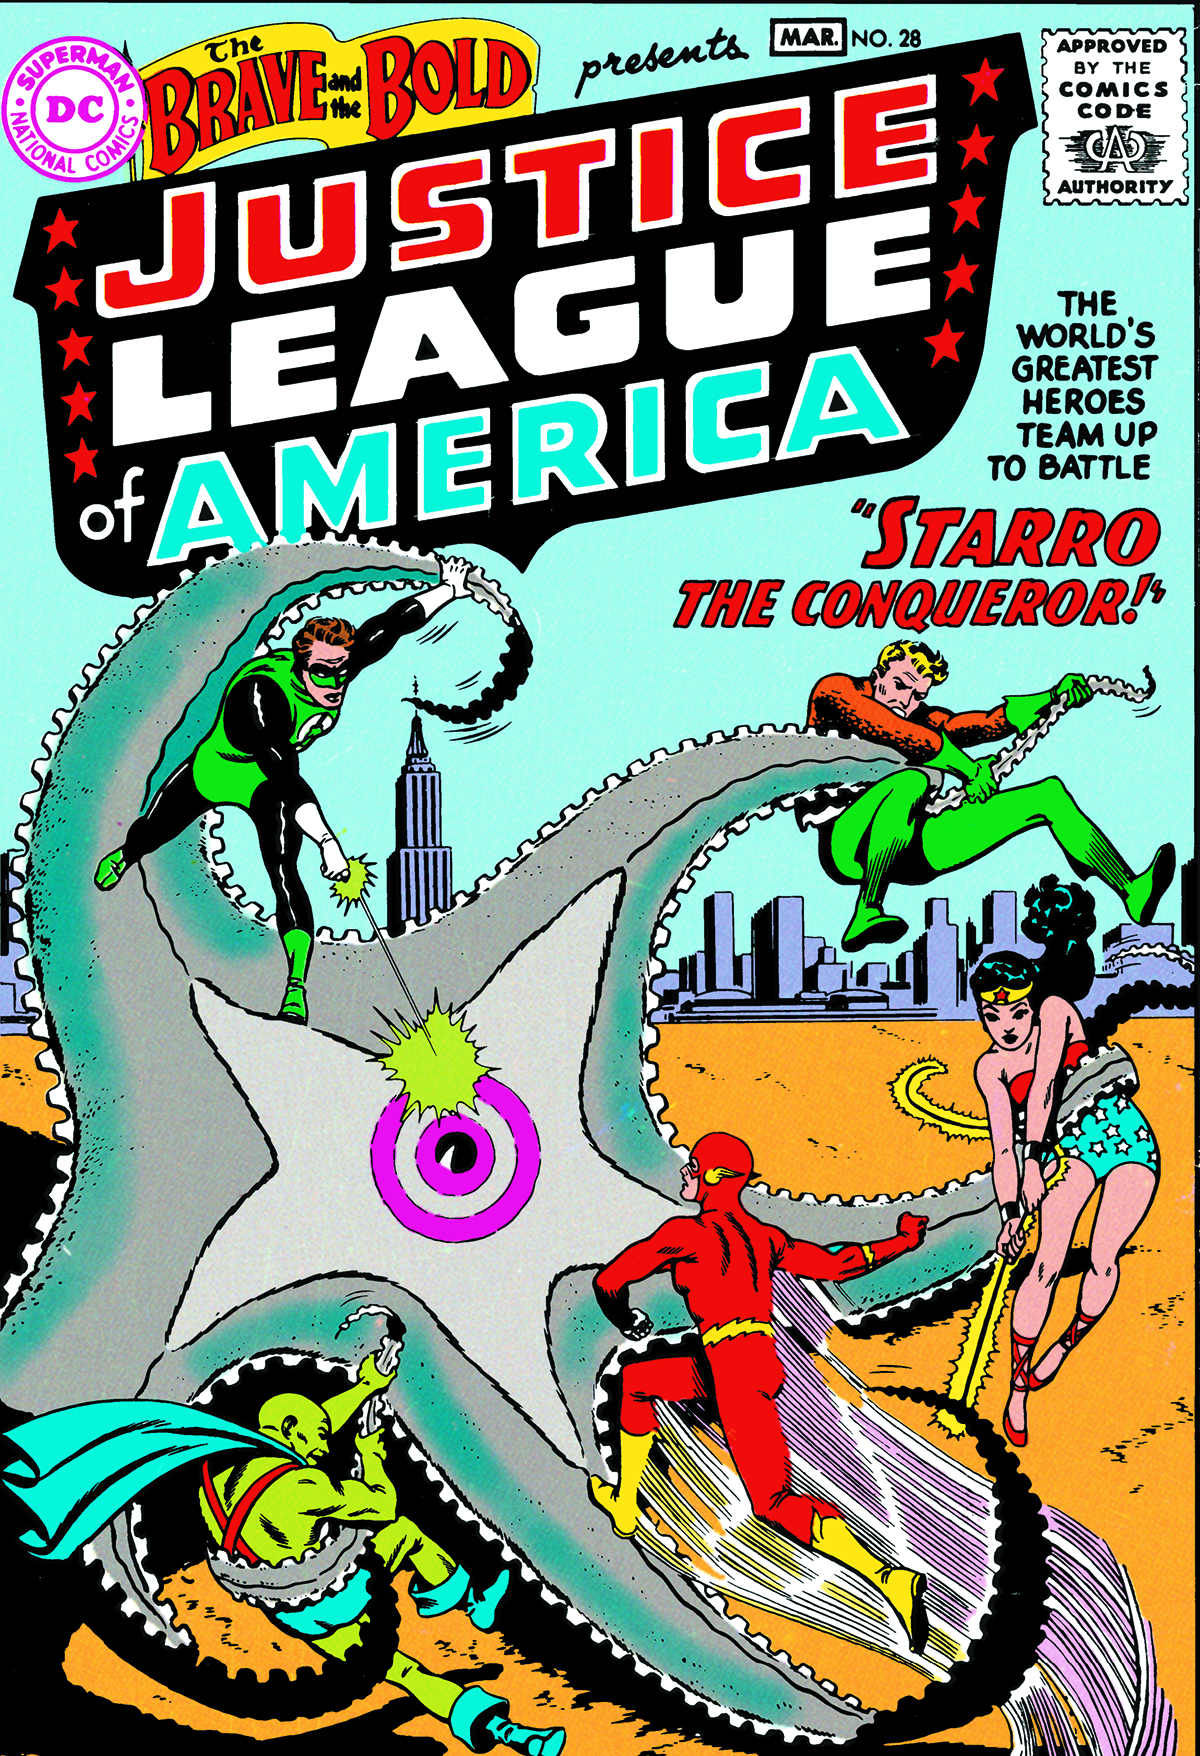 JUSTICE LEAGUE OF AMERICA THE SILVER AGE TP VOL 01